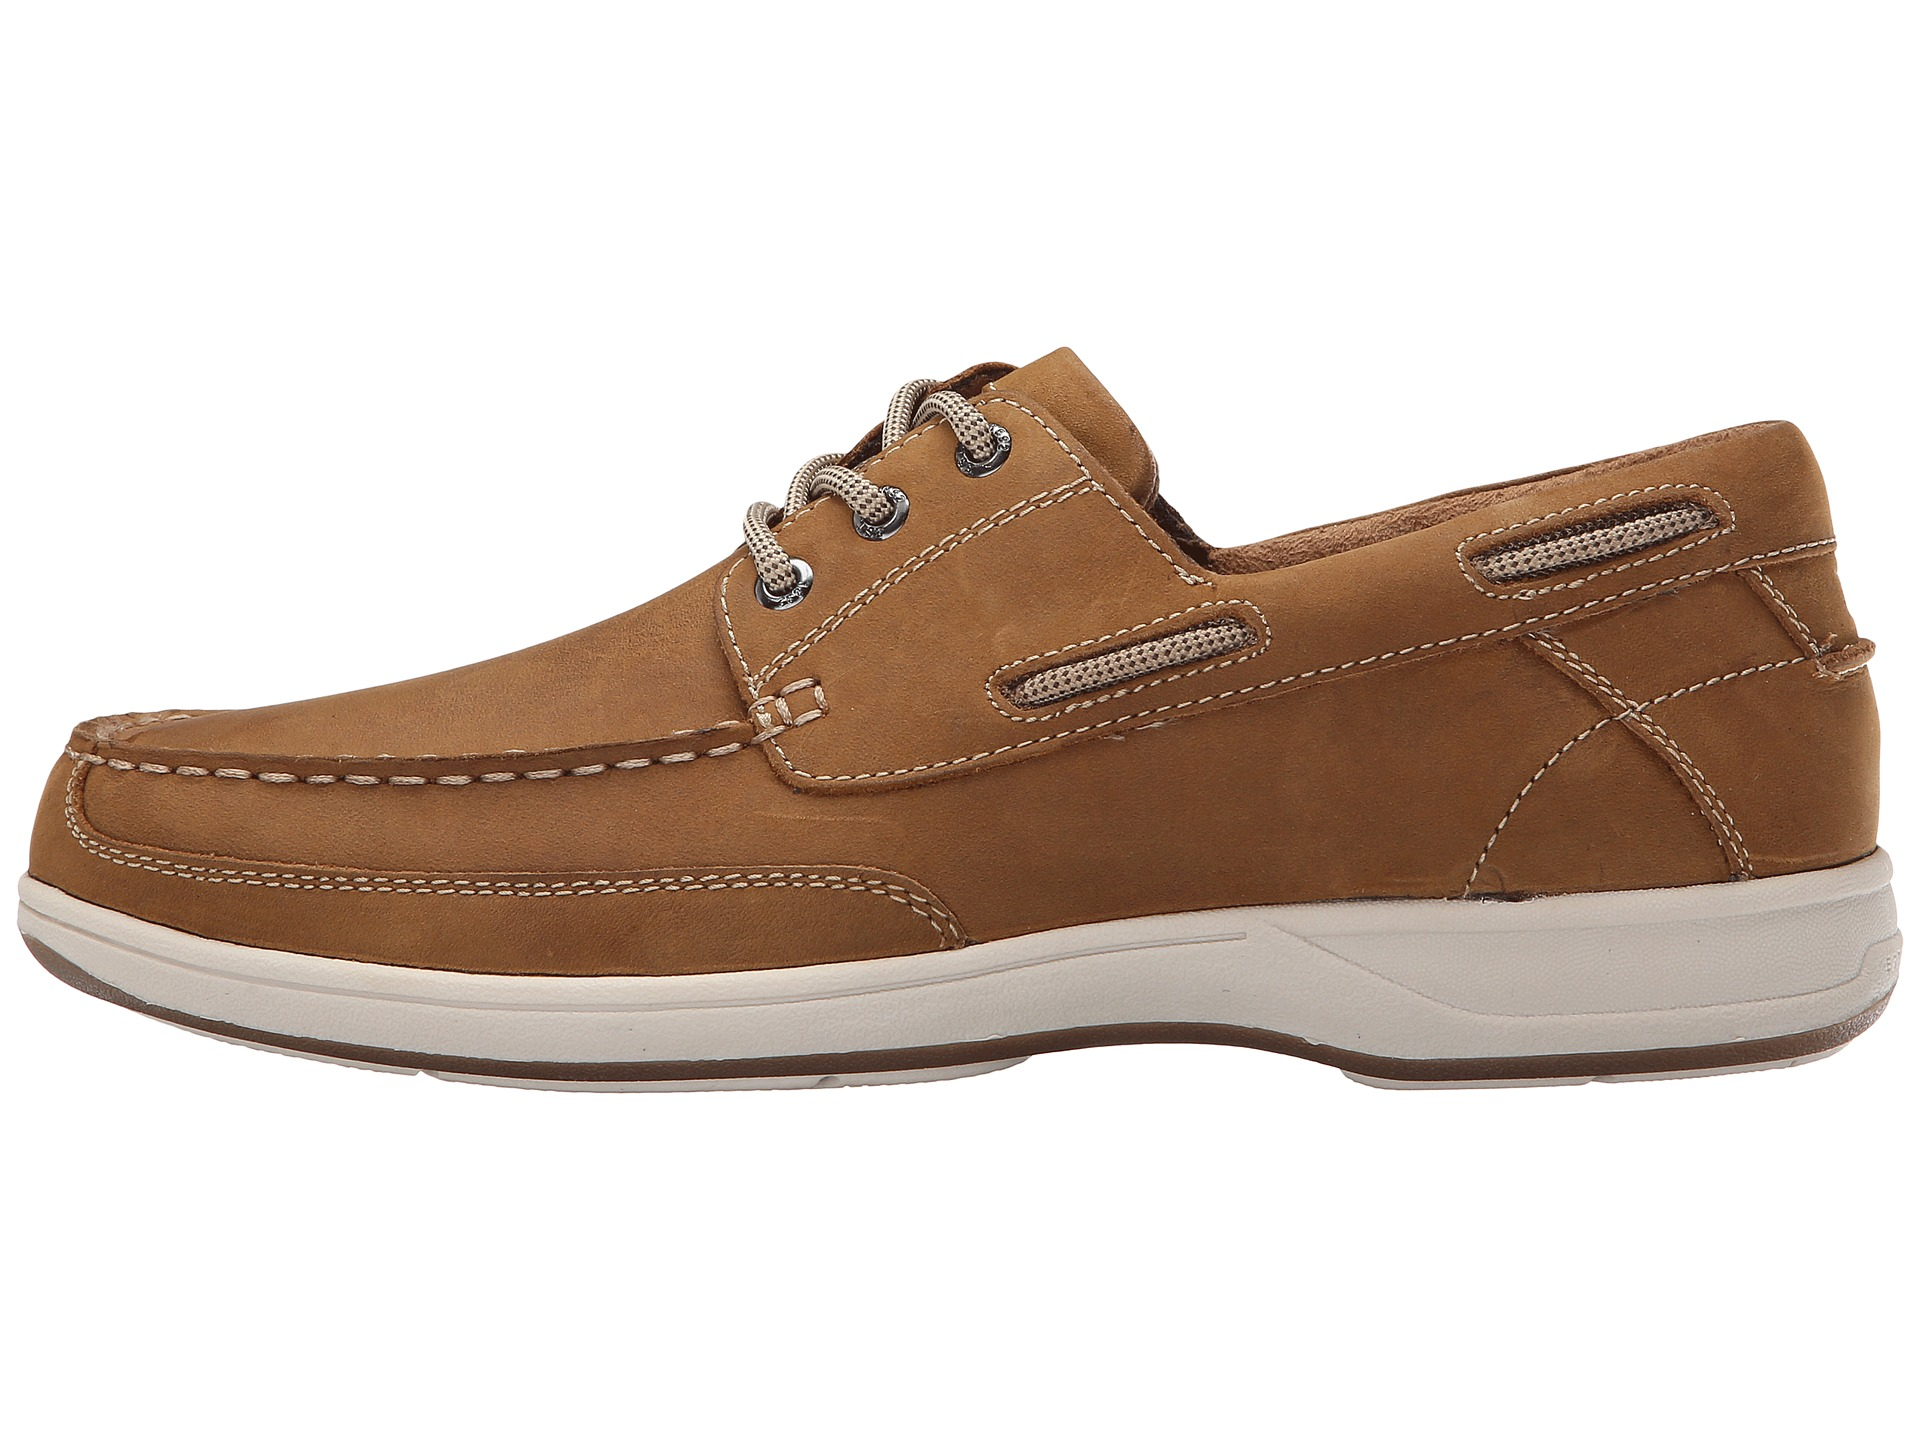 Mens Shoe Shops In Bluewater